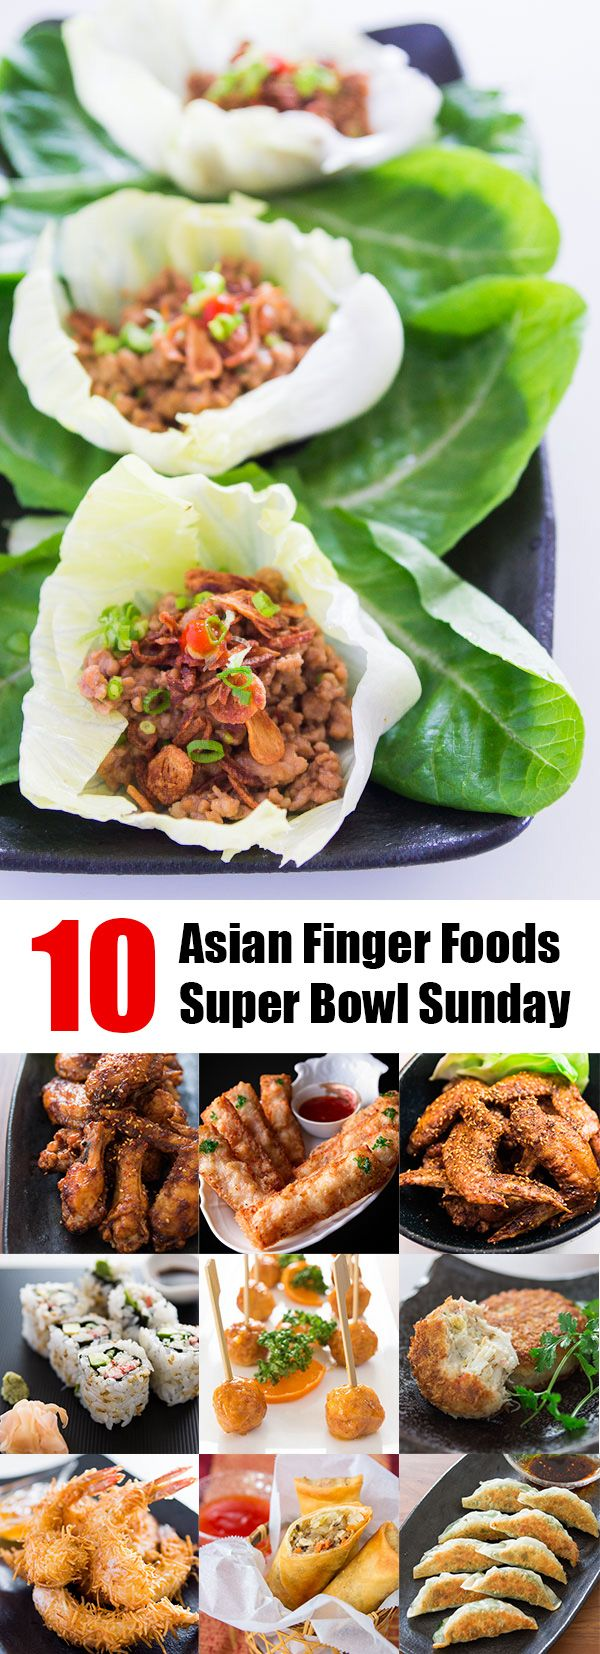 With game day just around the corner, I'm guessing I'm not the only one looking for snacks that don't require utensils. Whether you're rooting for the Seahawks or Patriots, here are some savory Asian snacks to spice up your Super Bowl Sunday. 1. Spicy Chicken Lettuce Cups Let's face-it, Super Bowl Sunday is not a …